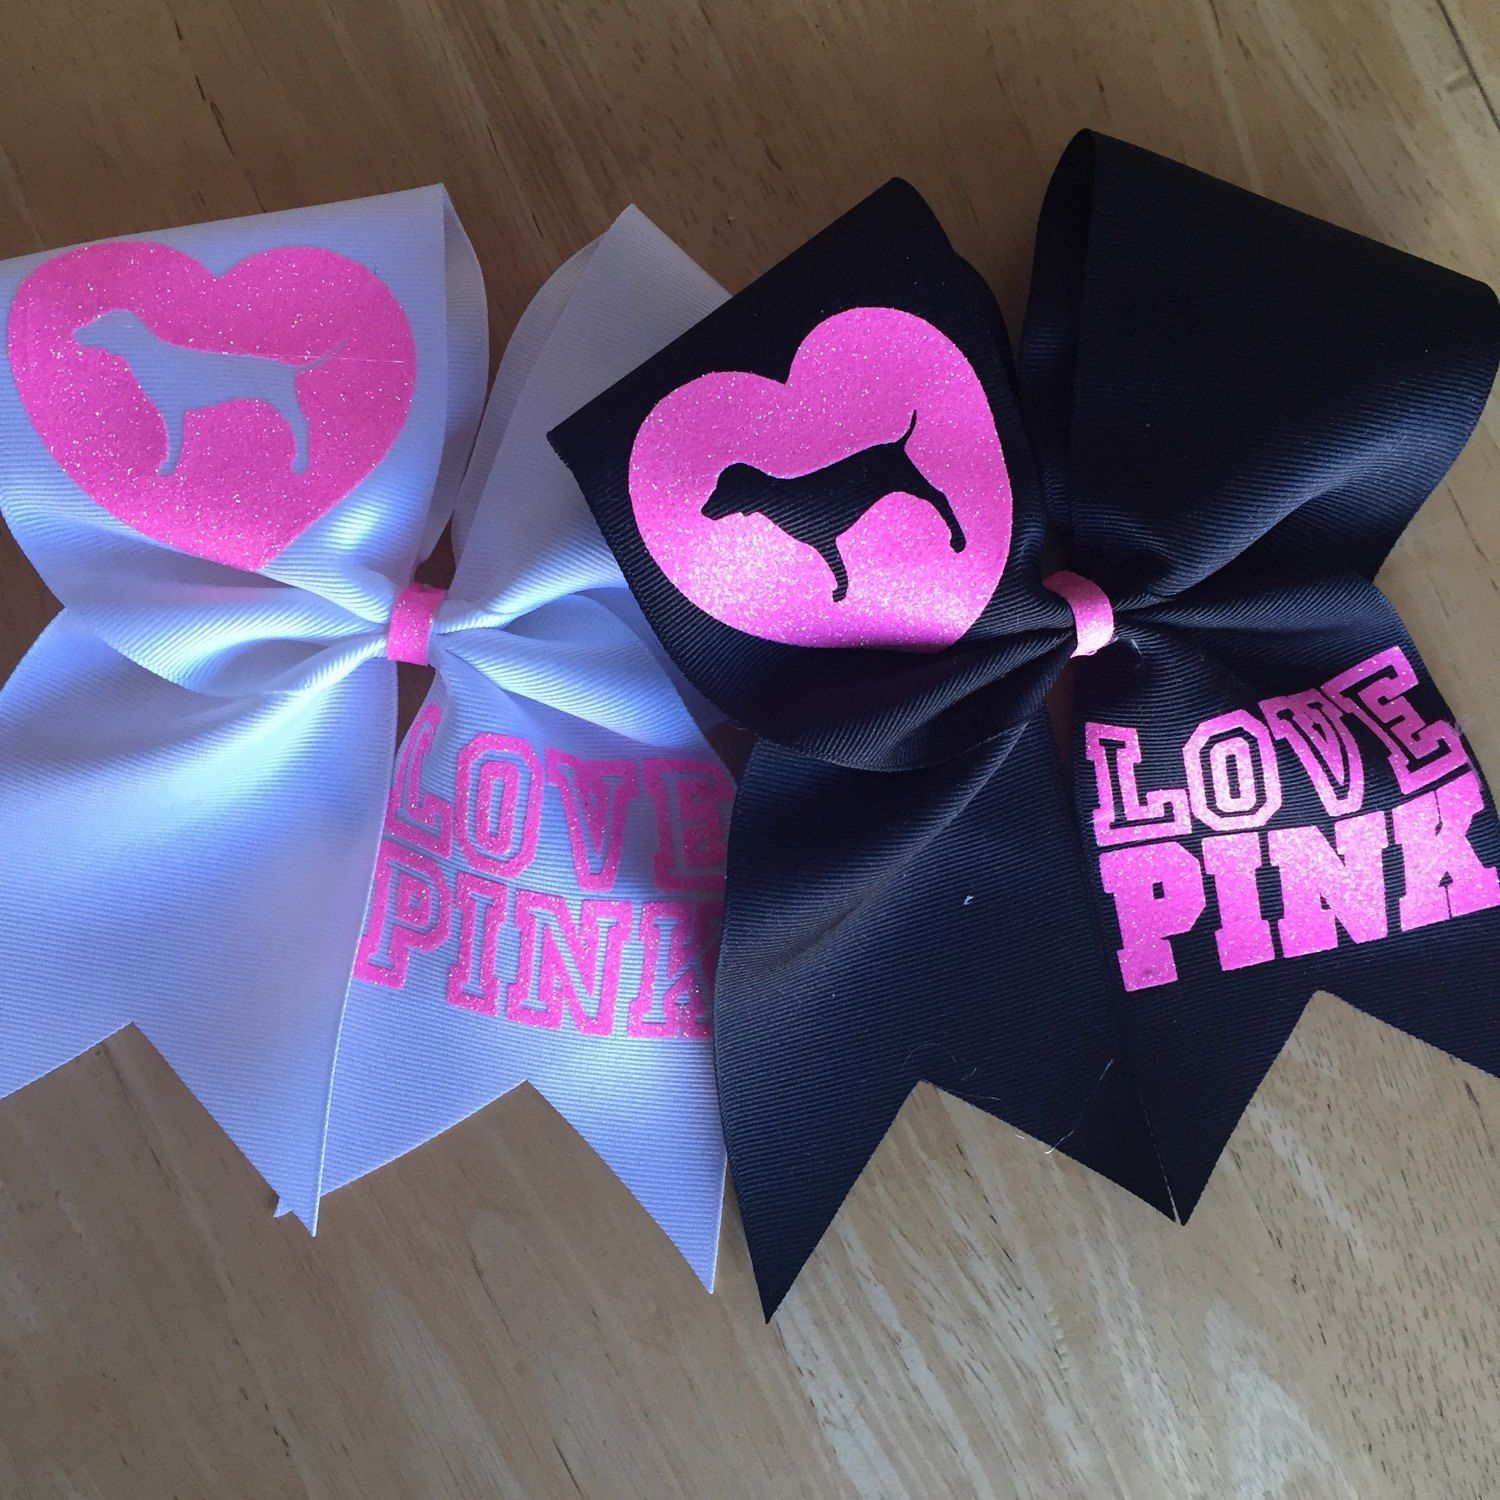 Cheer bow holder for cheer bows and hair bows cheer bow hanger - Pink Cheer Bows Victoria S Secret Pink Cheer Bow Love Pink Dog Heart Cheerleading Sports Hair Bow